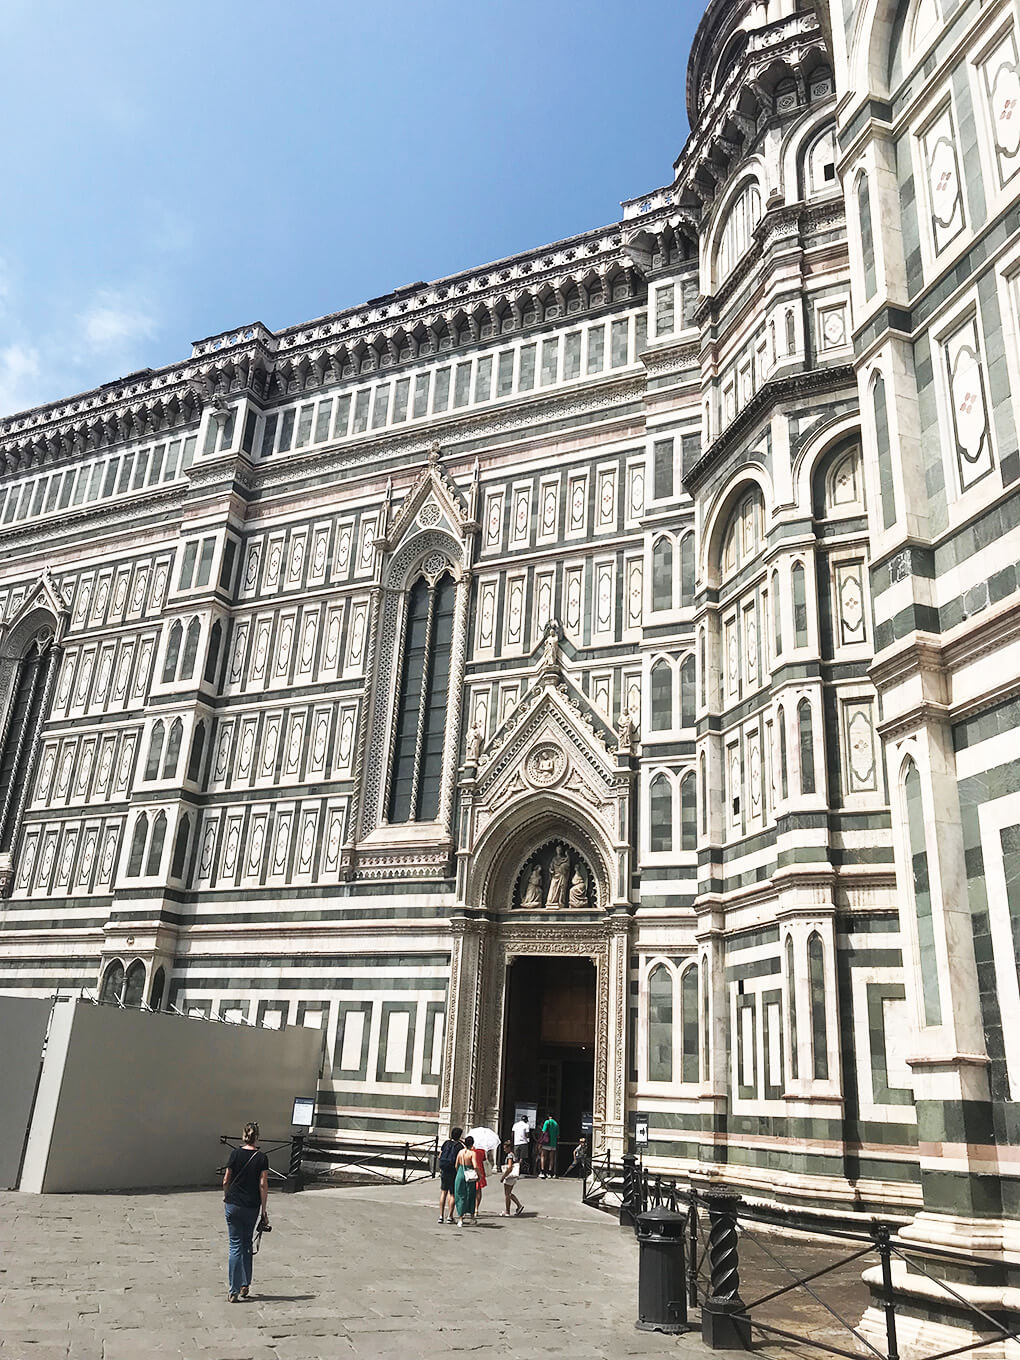 Top 17 Things from Italy www.sarahkayhoffman.com Florence #travel #italy